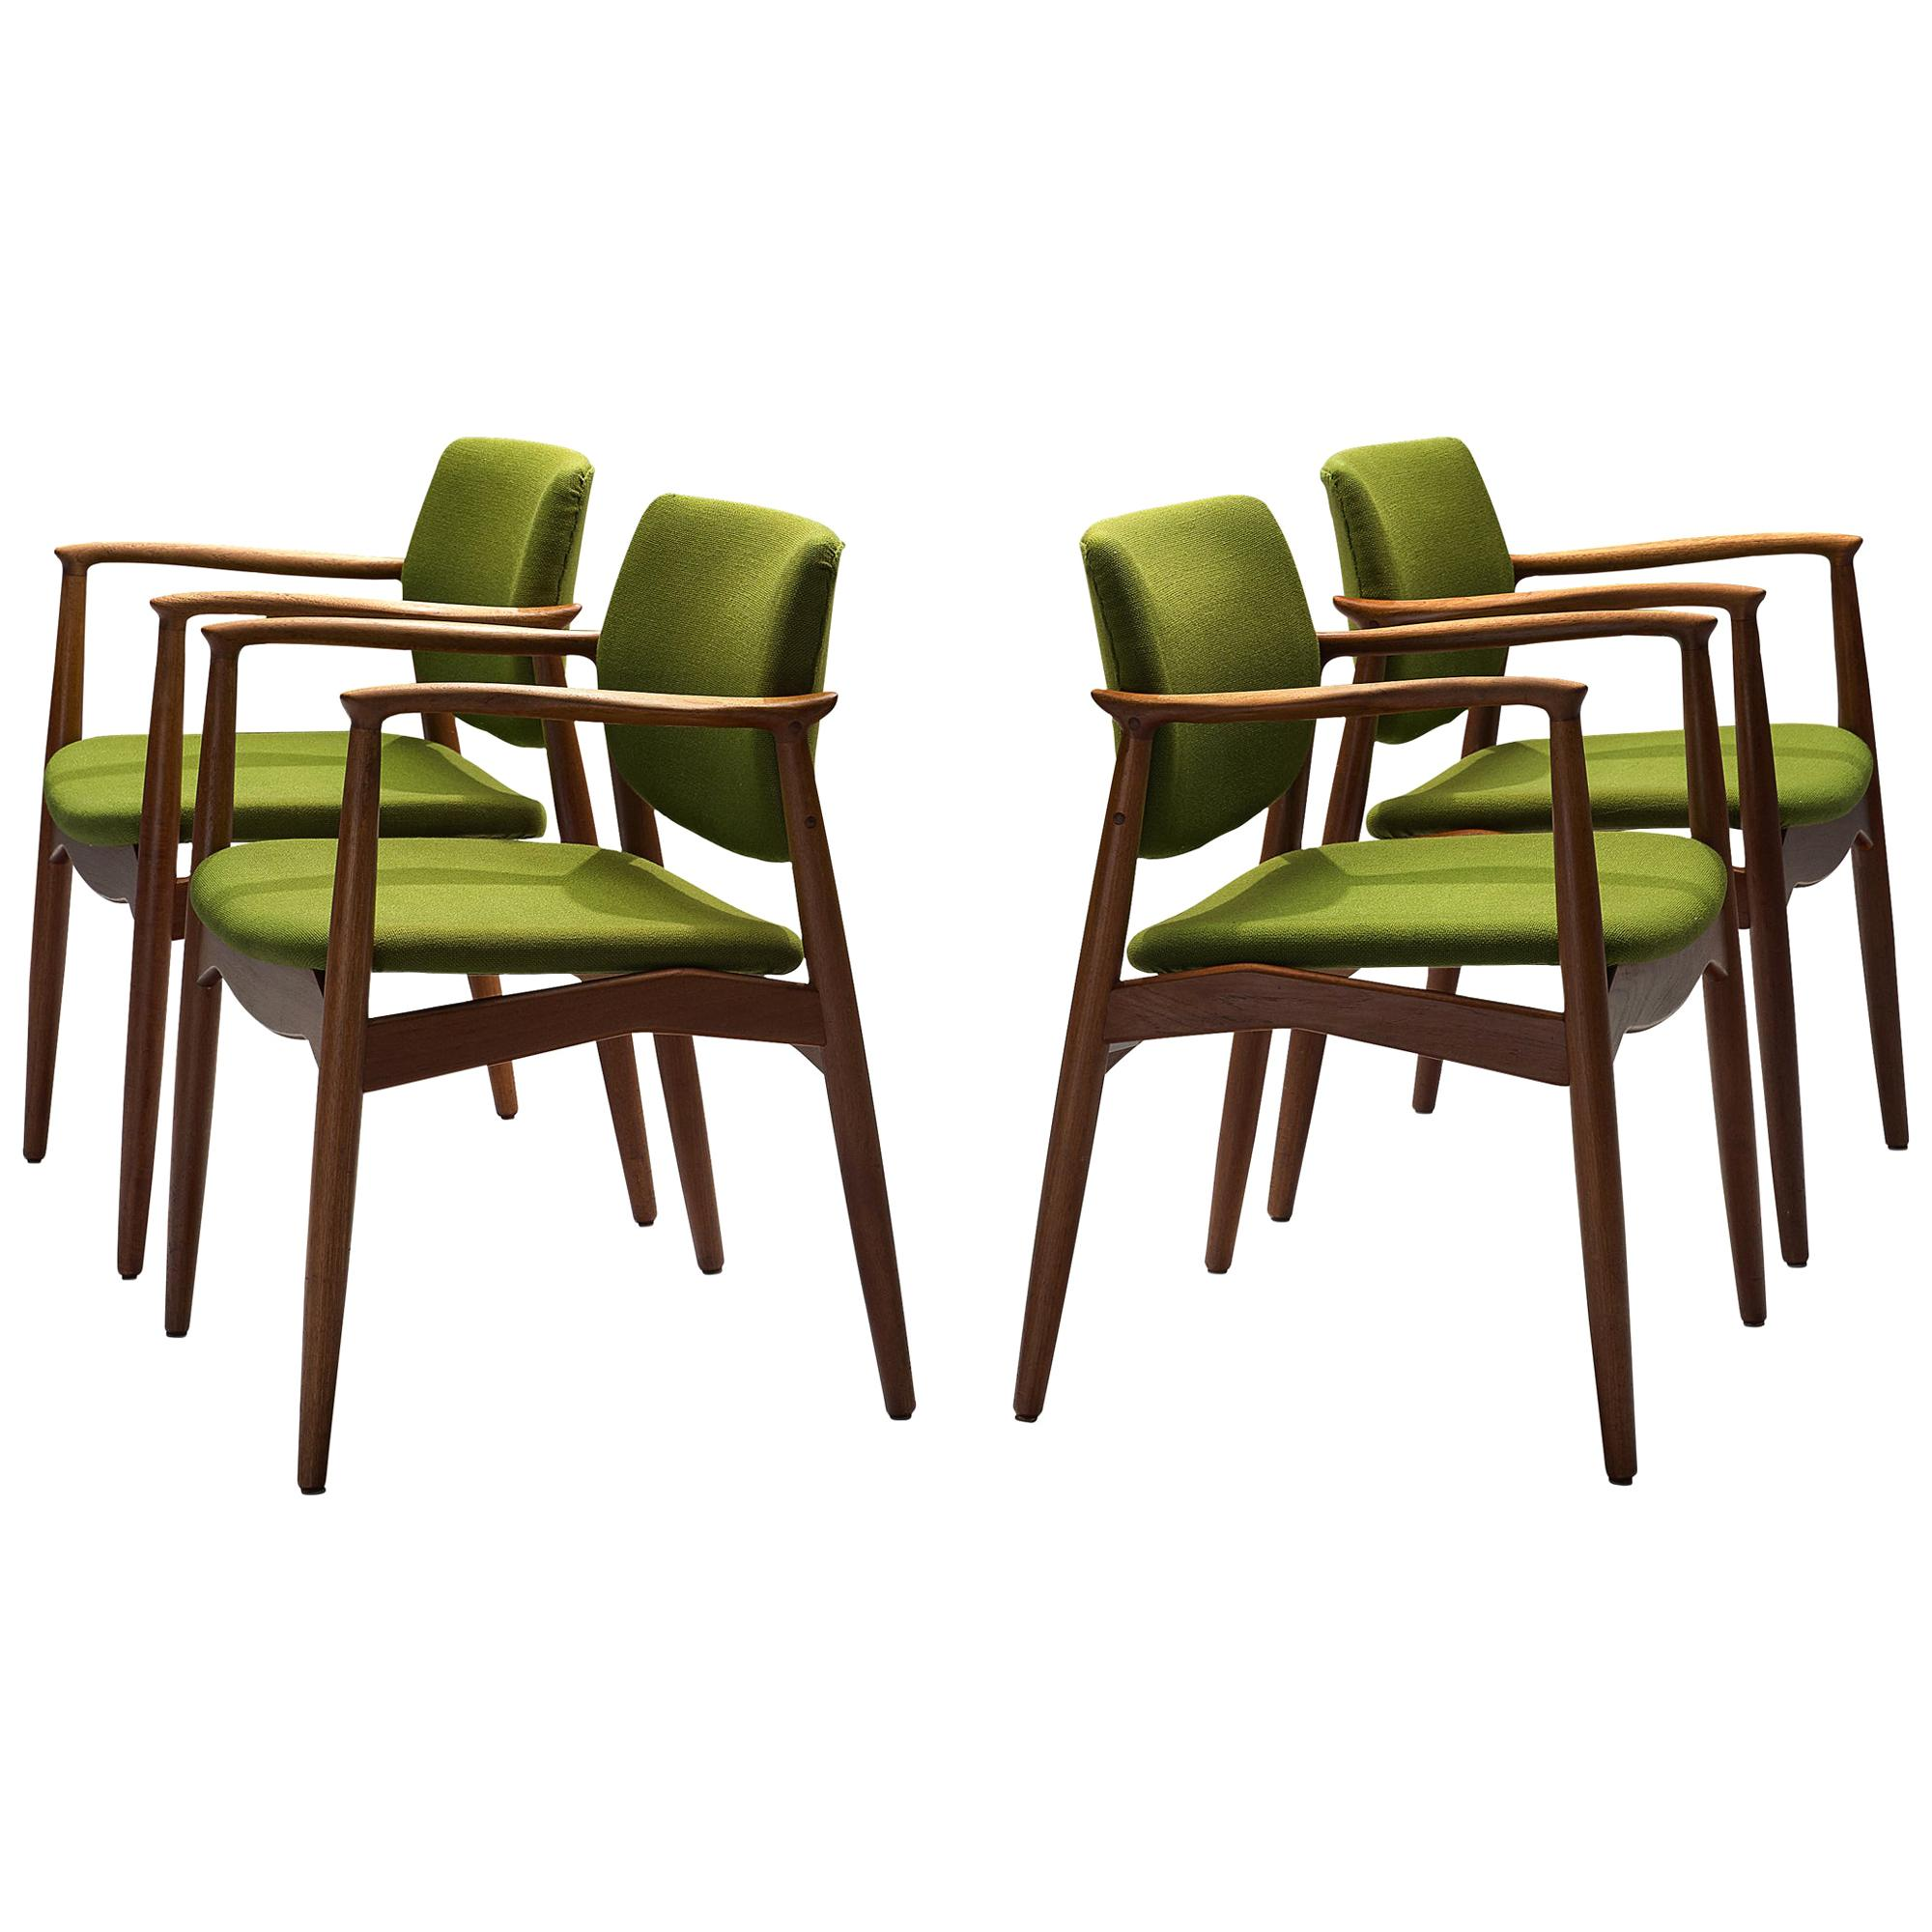 Erik Buch Set of Four 'Captains' Armchairs in Teak and Green Fabric Upholstery